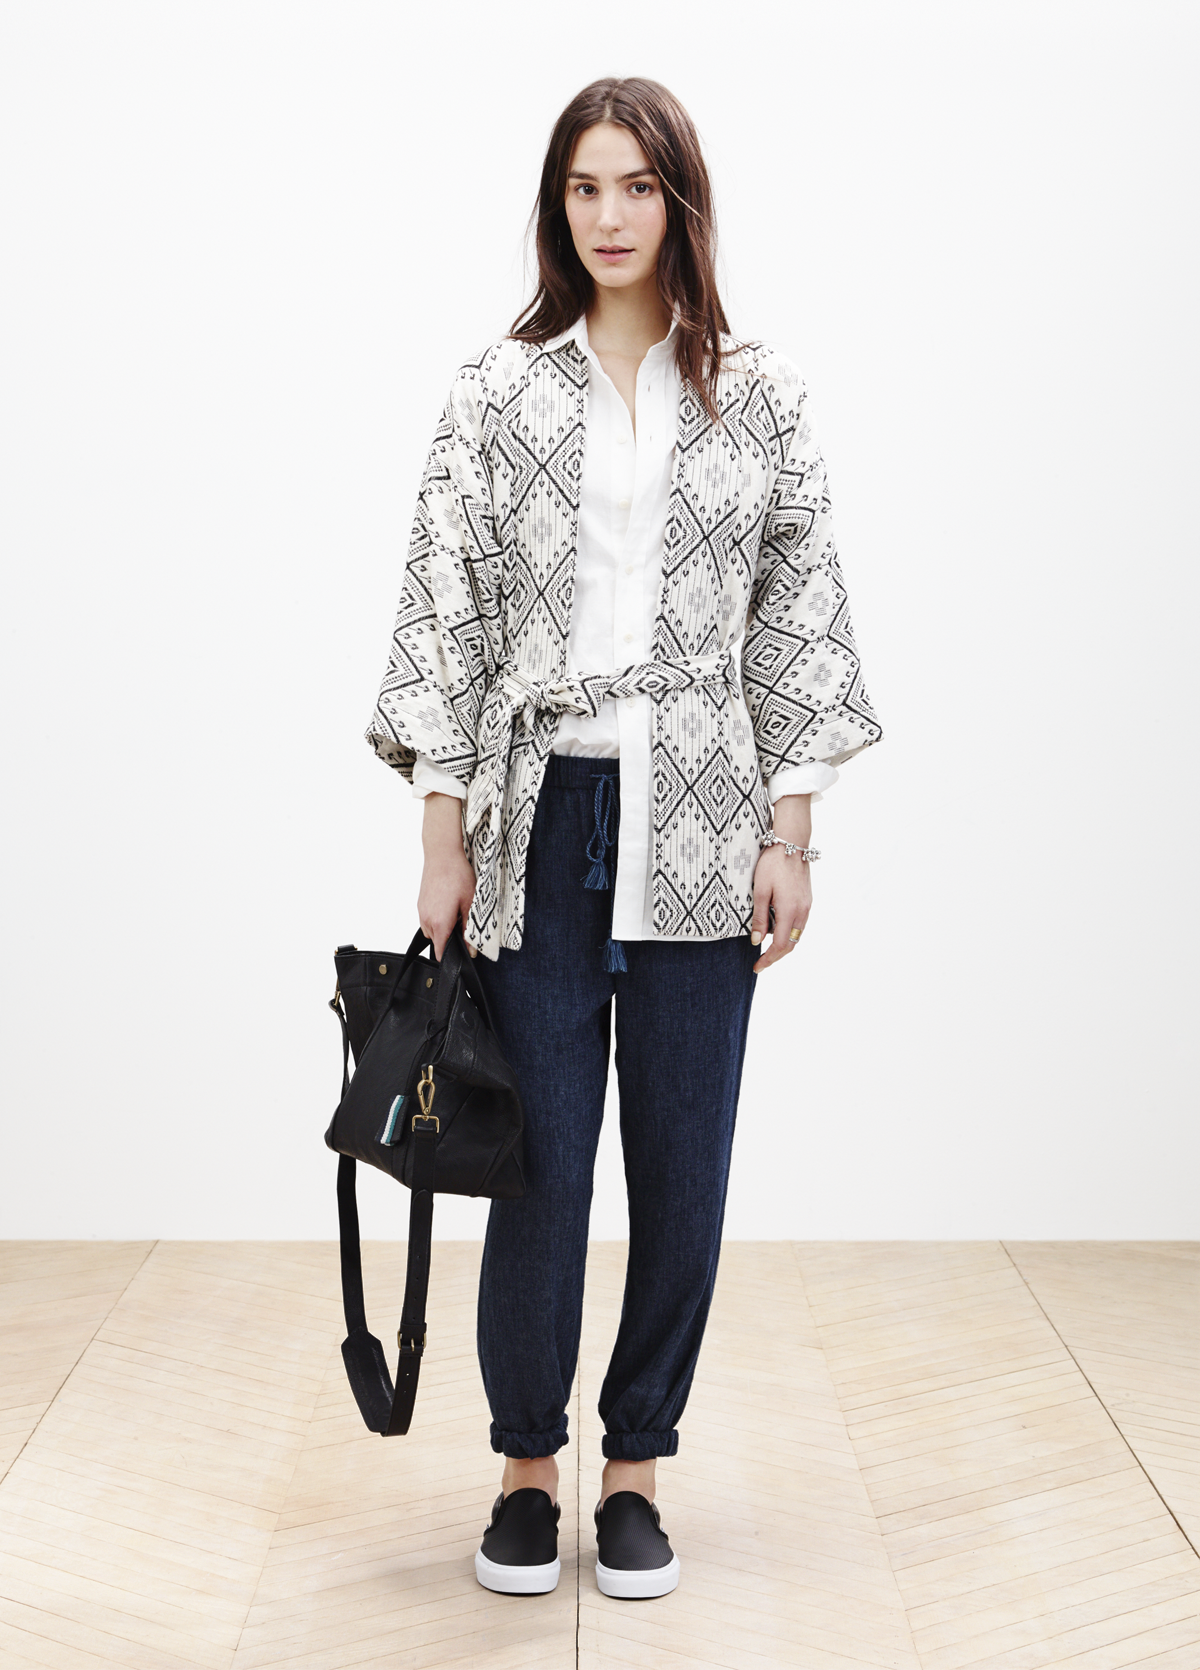 Madewell kimono jacket worn with the oversized side-button shirt   ...